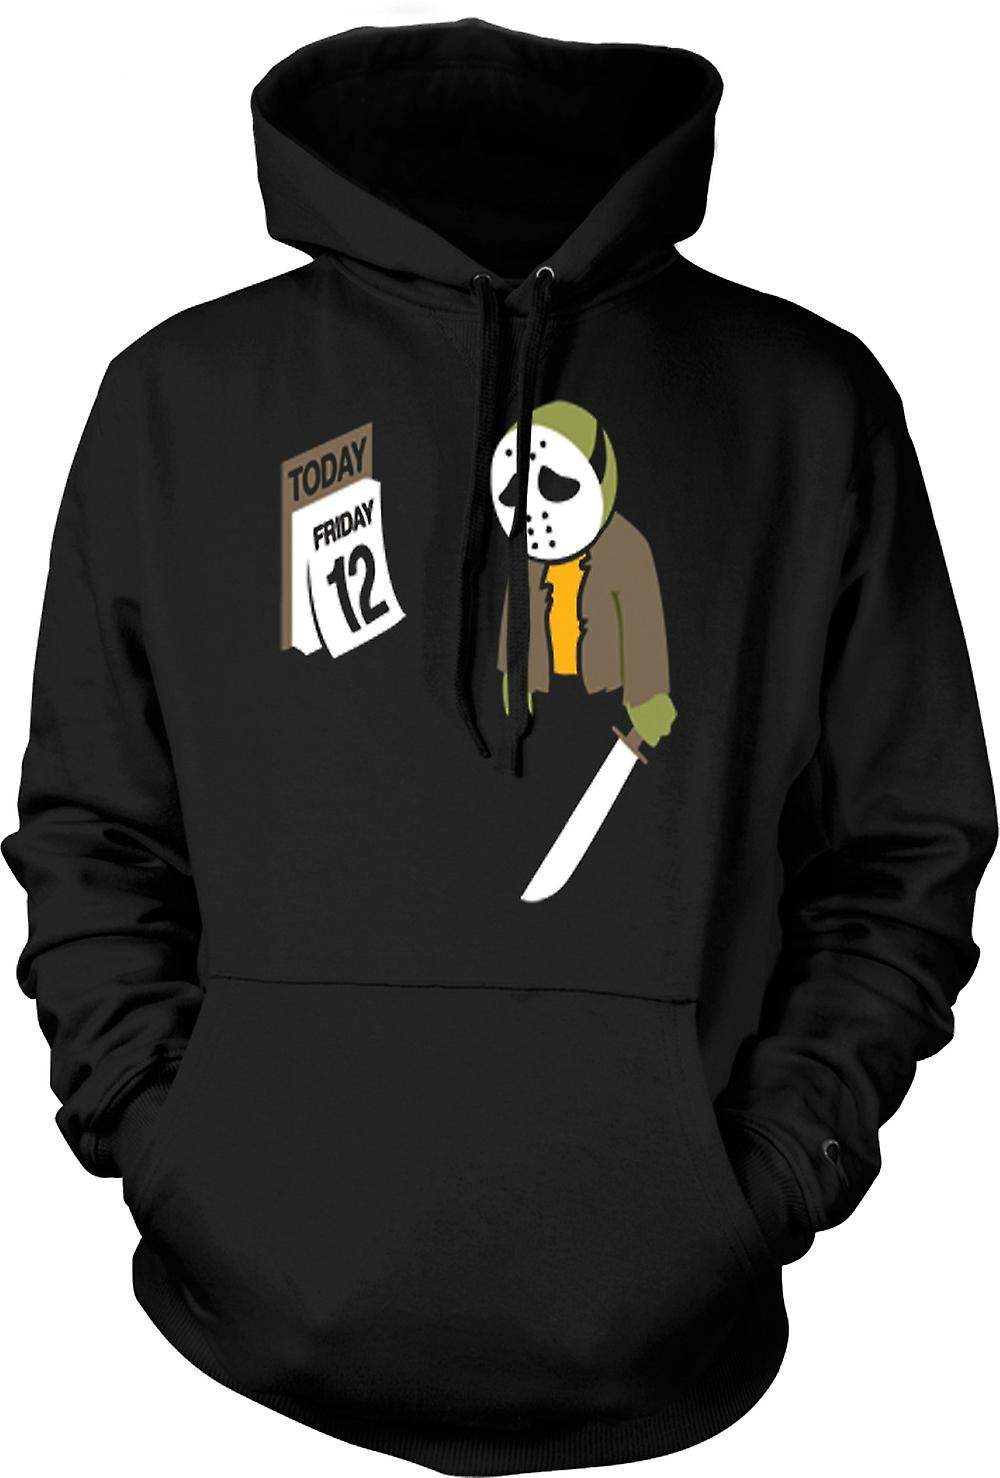 Kids Hoodie - Friday The 12th Jason Voorhees